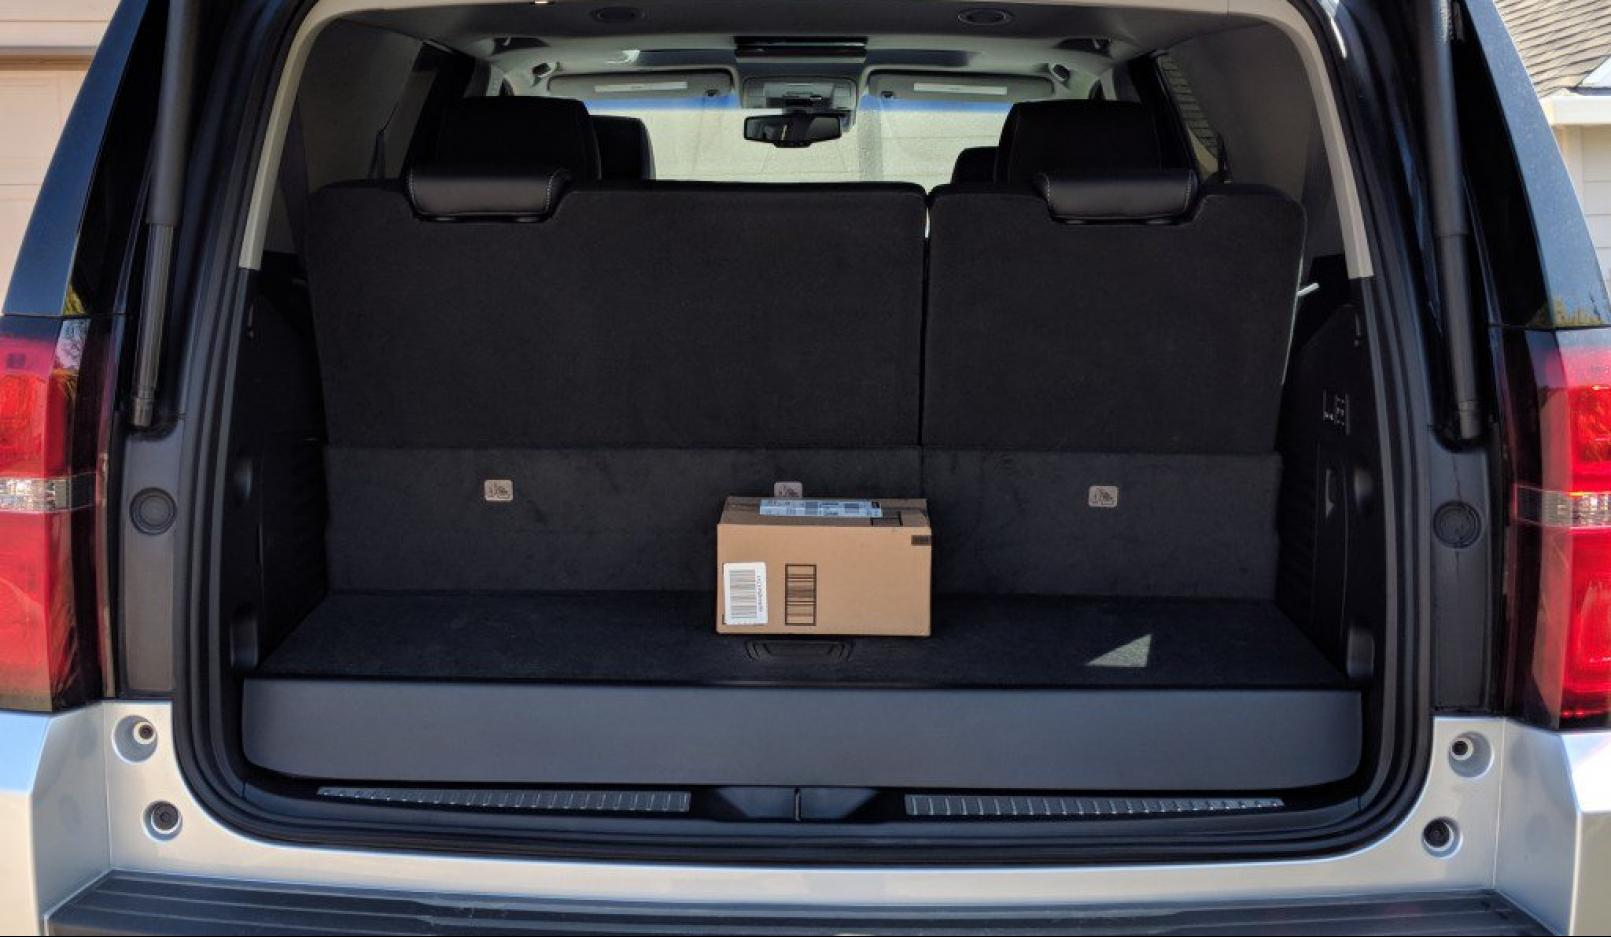 amazon is now delivering goods to car trunks cursor